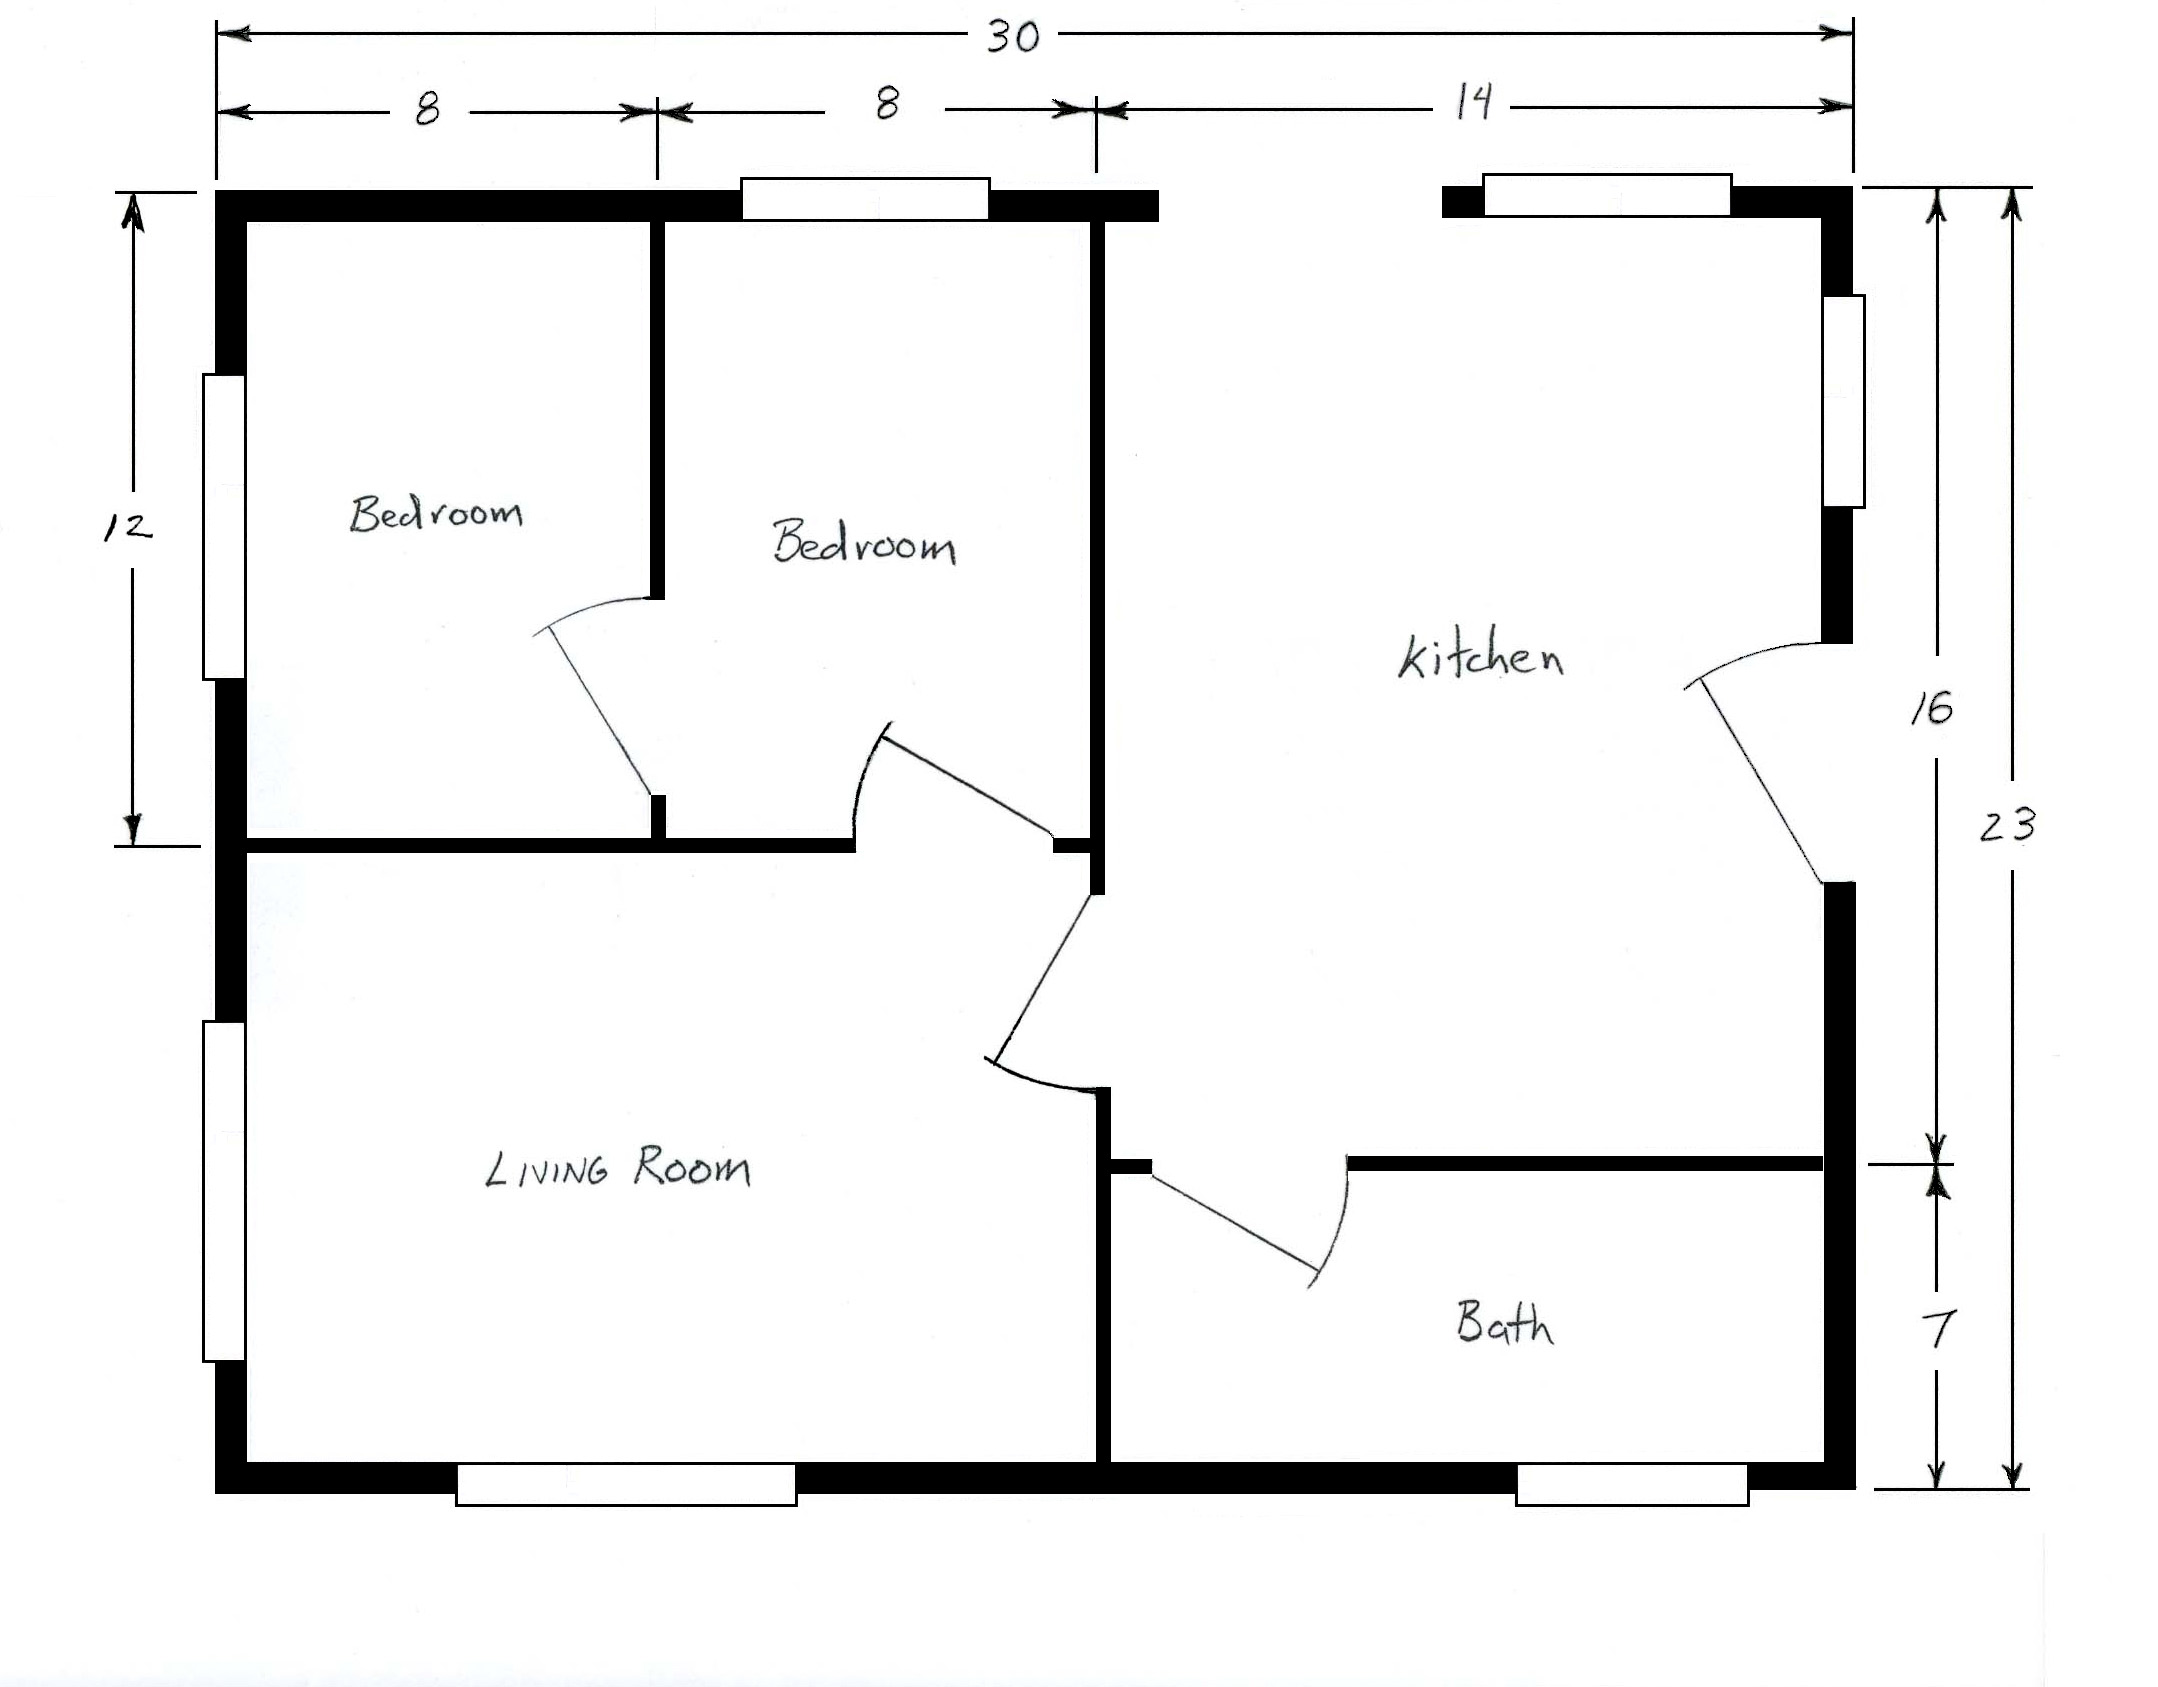 Restaurant floor plans templates - Floor Plan Sample New Page 1 Tcdsbstaff Ednet Ns Ca